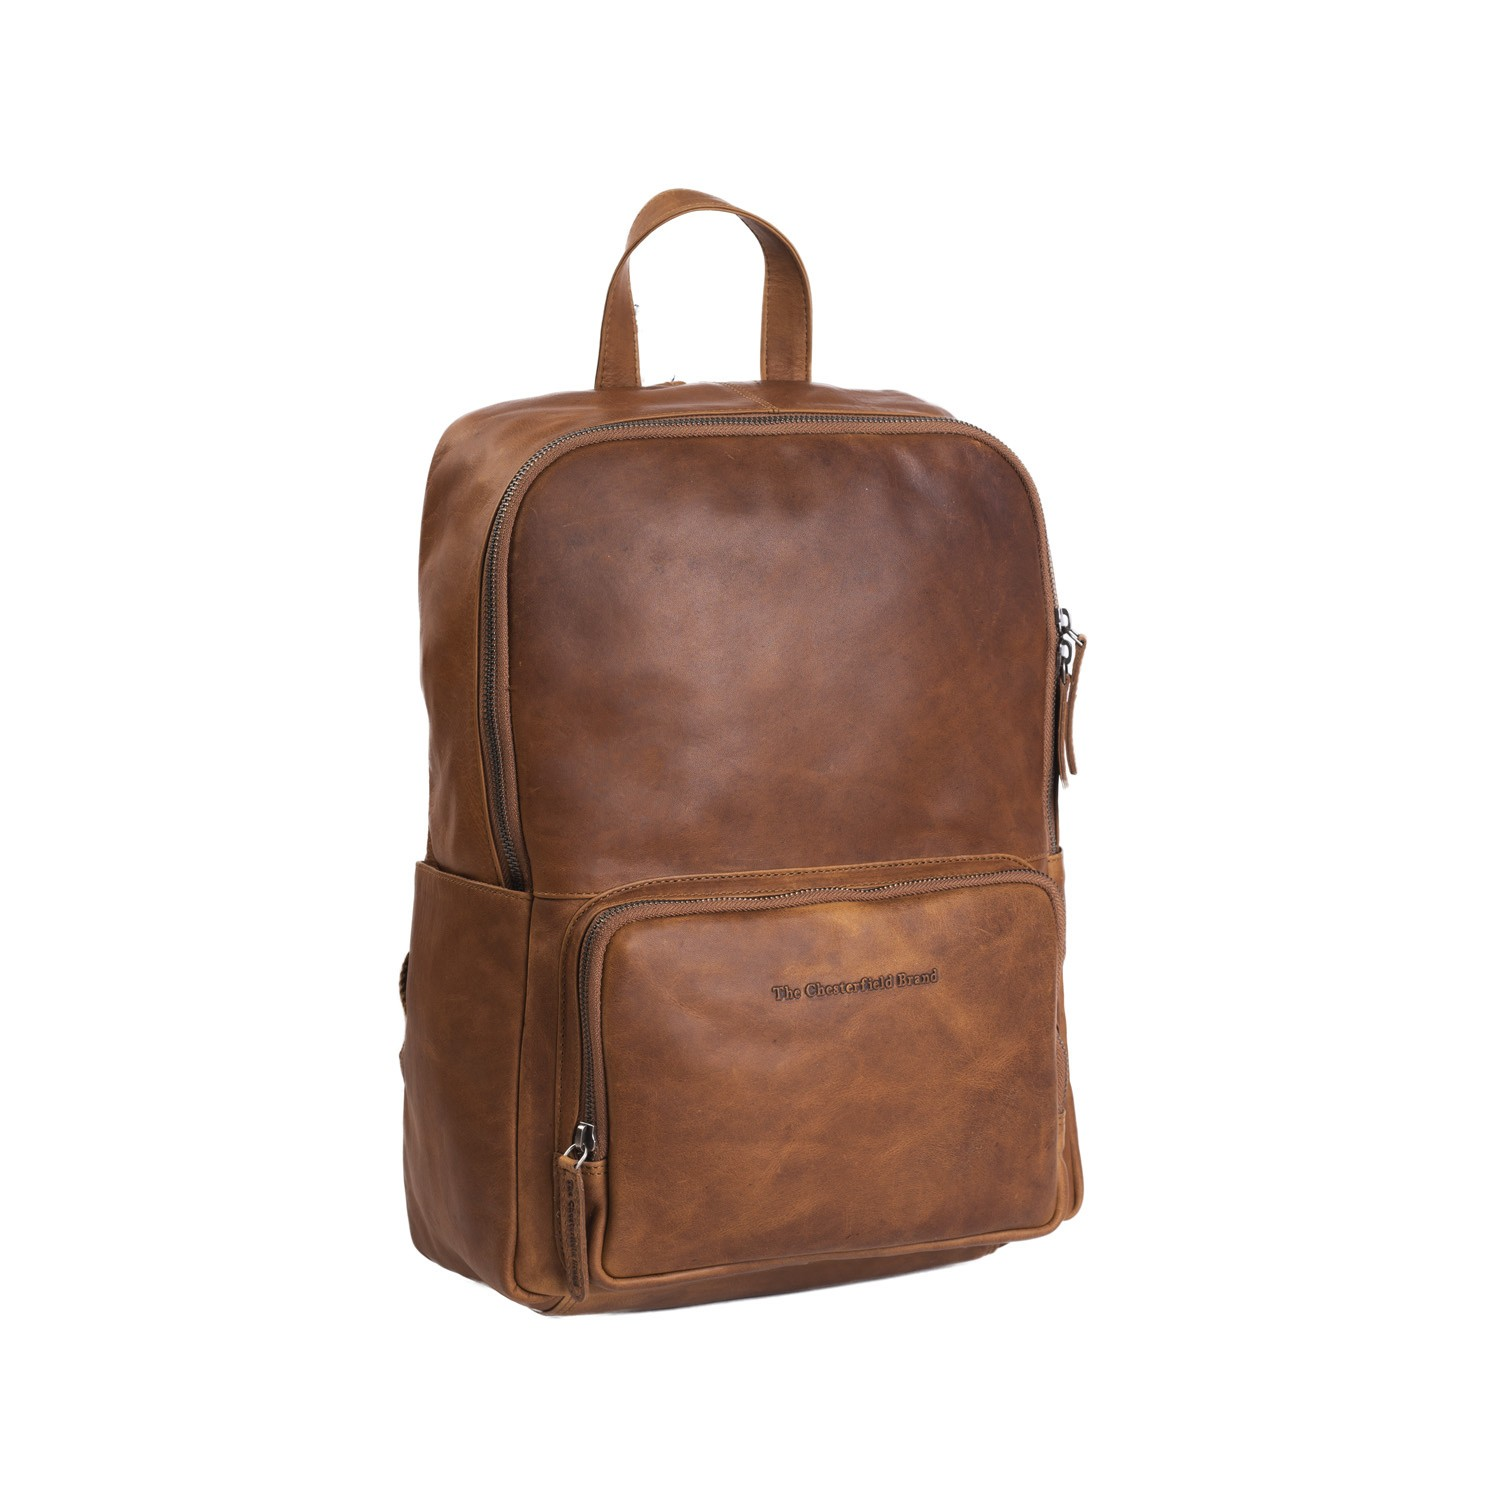 38b52d175da30 Leather Backpack Cognac Ari